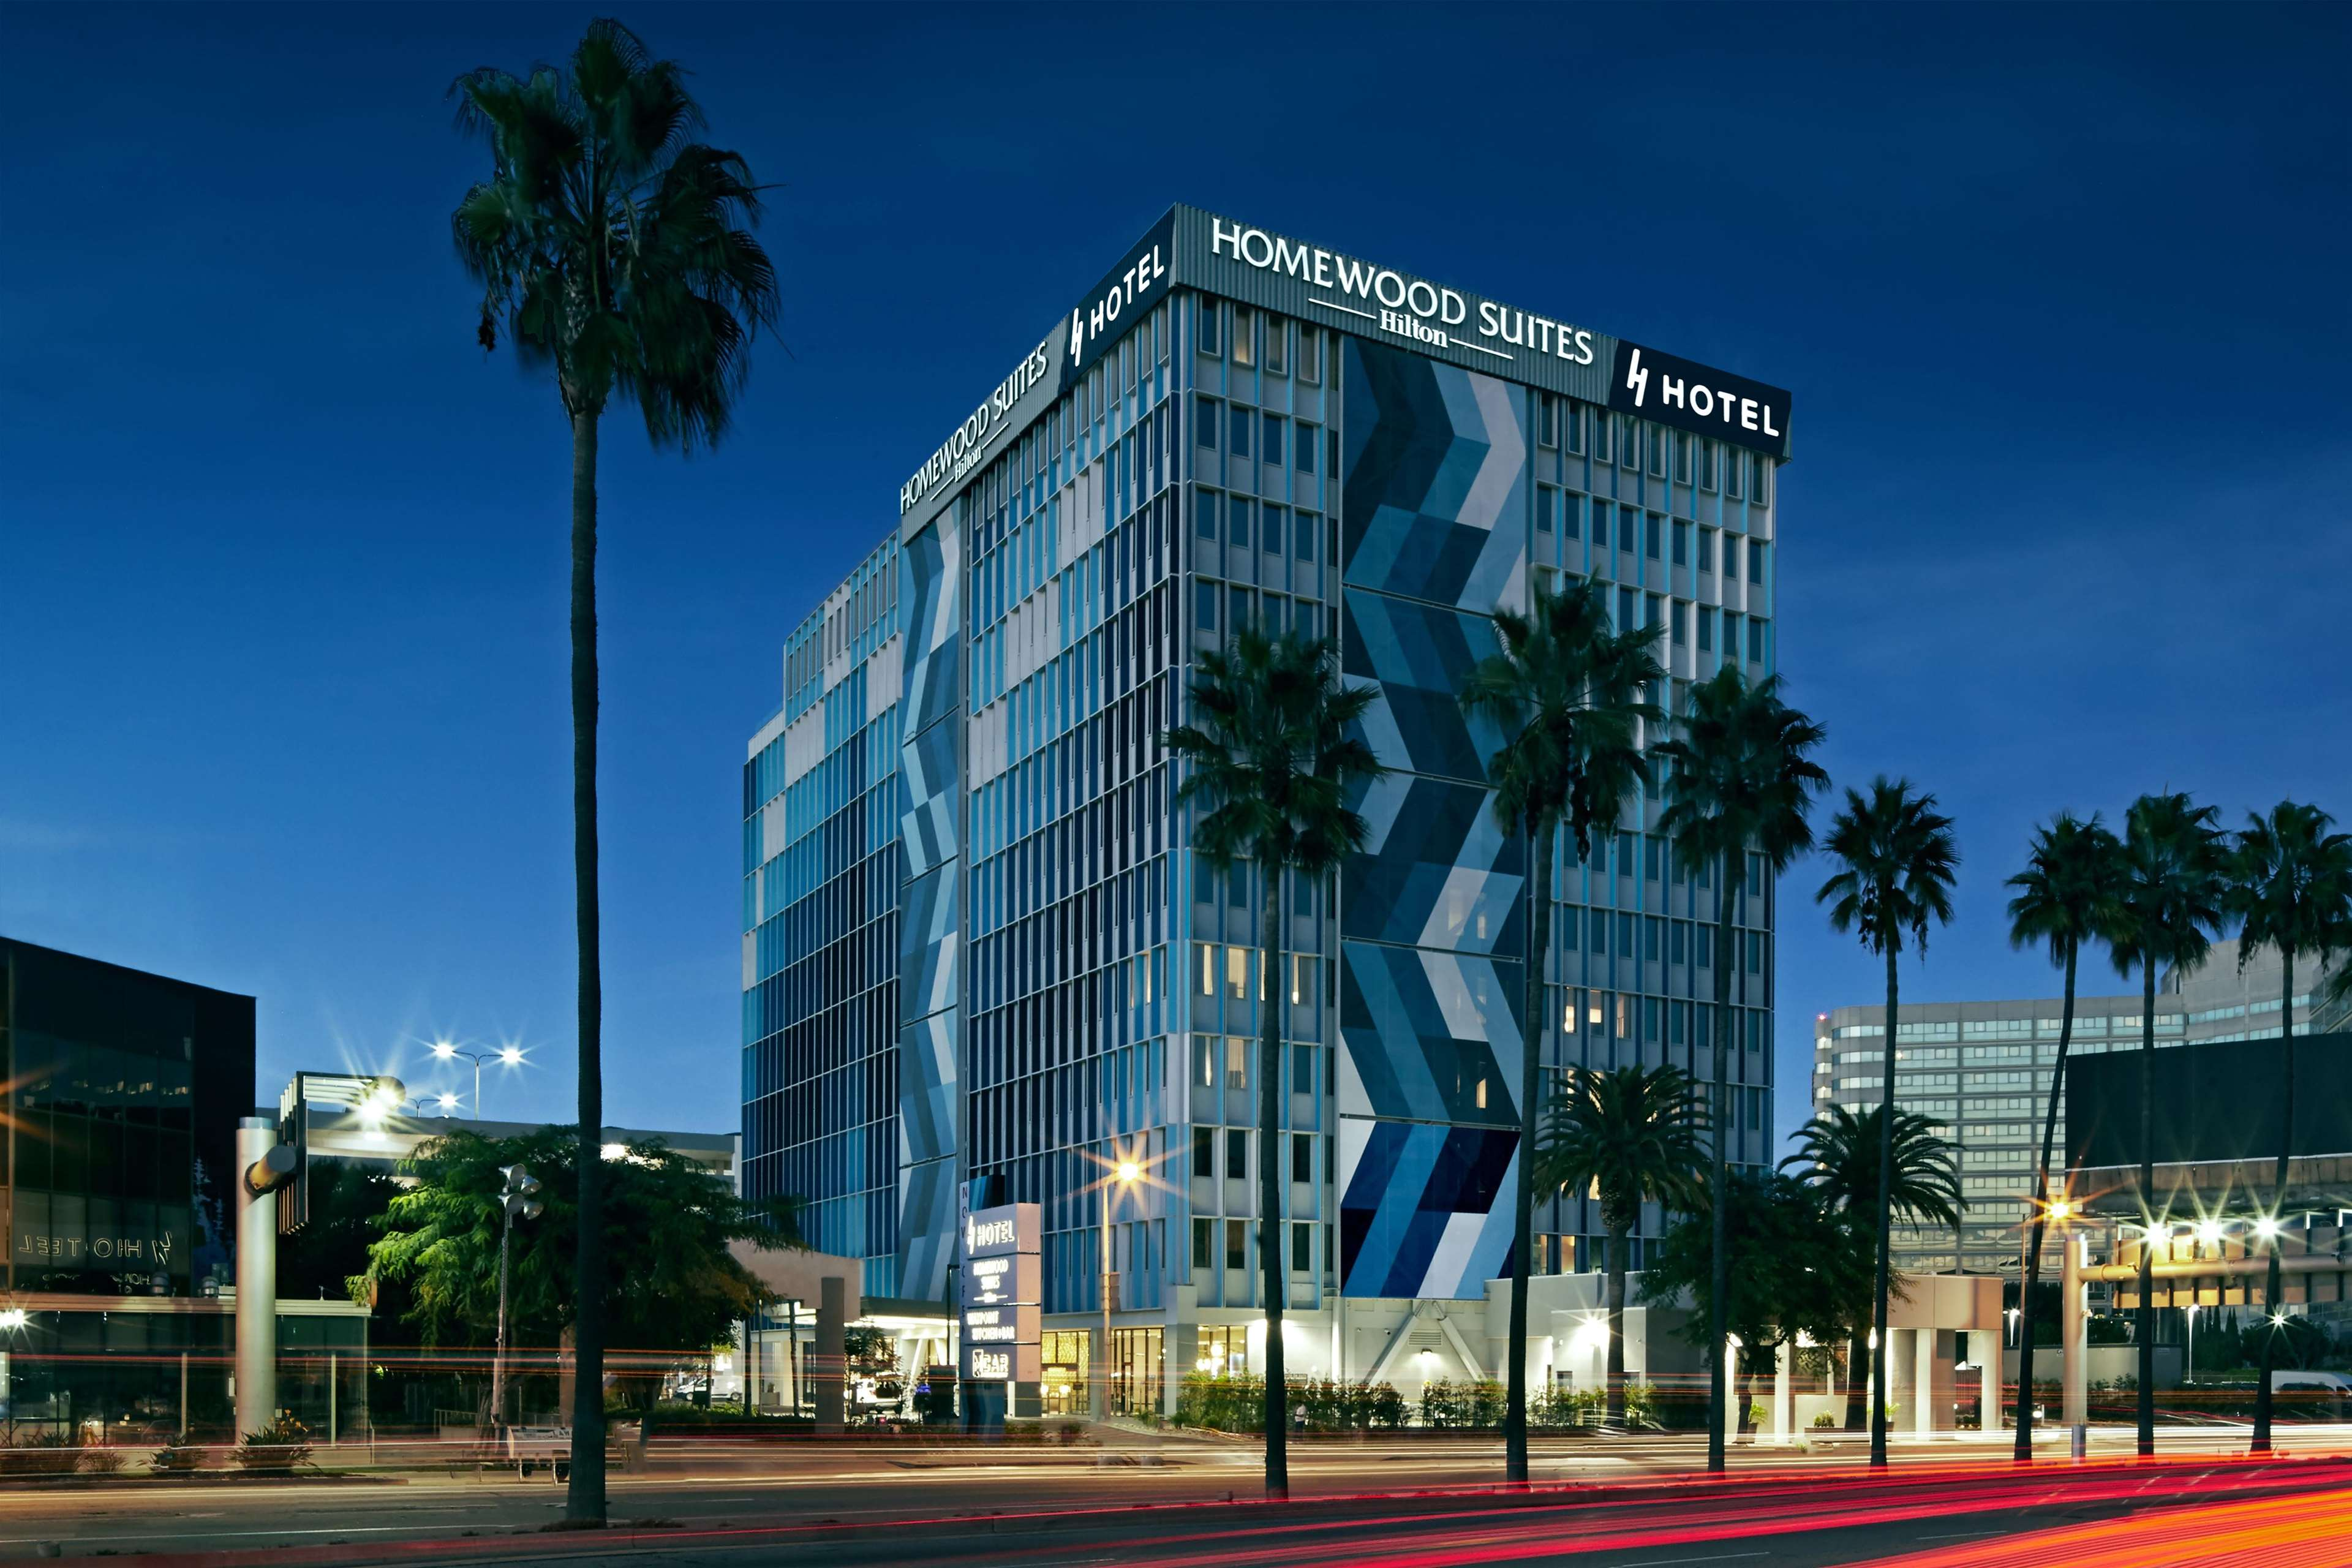 Homewood Suites by Hilton Los Angeles International Airport image 6